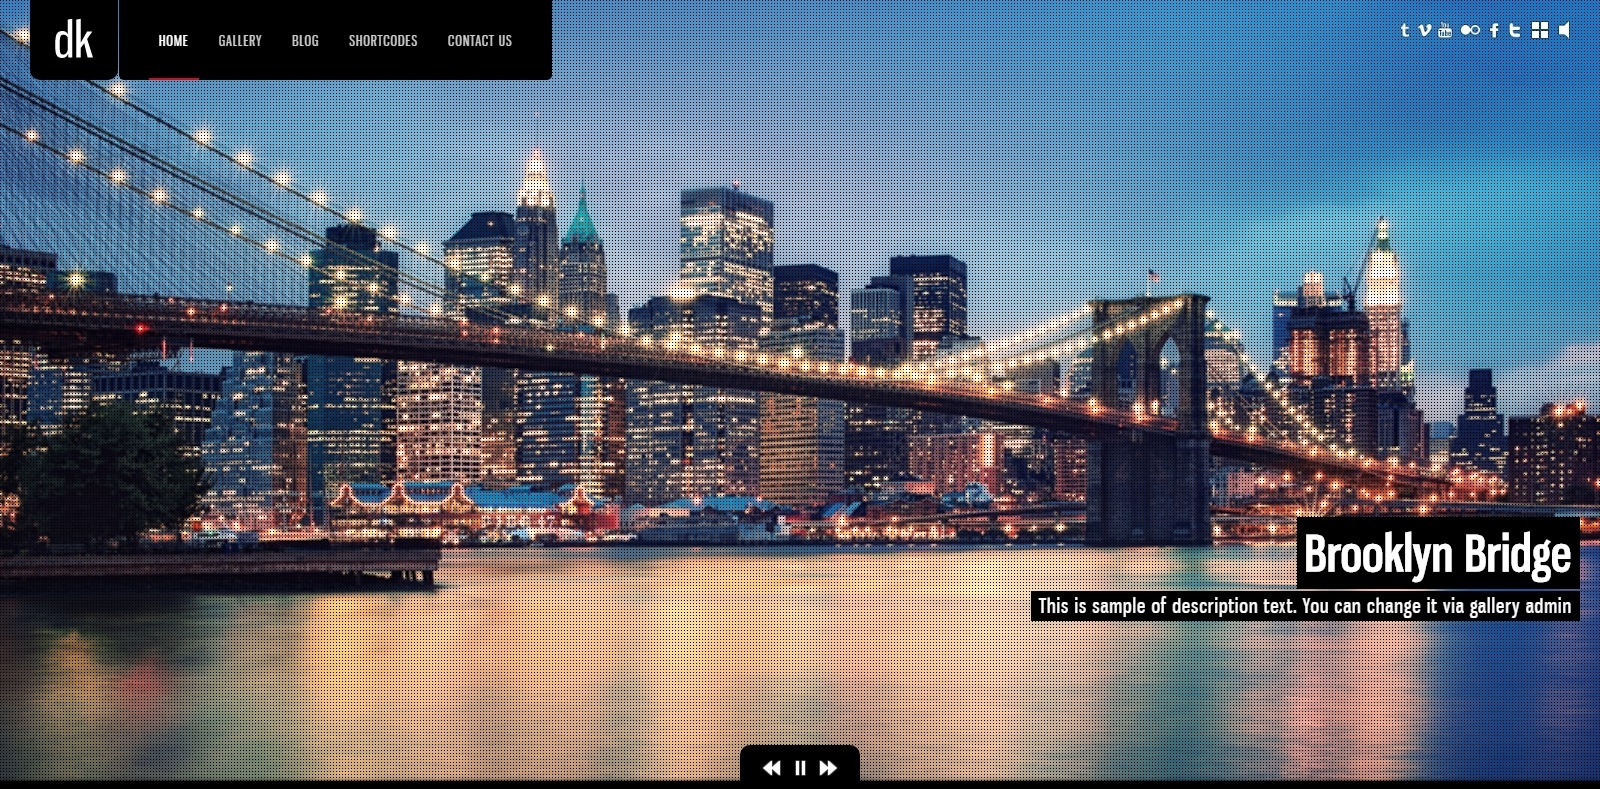 dk-photography-gallery-website-template